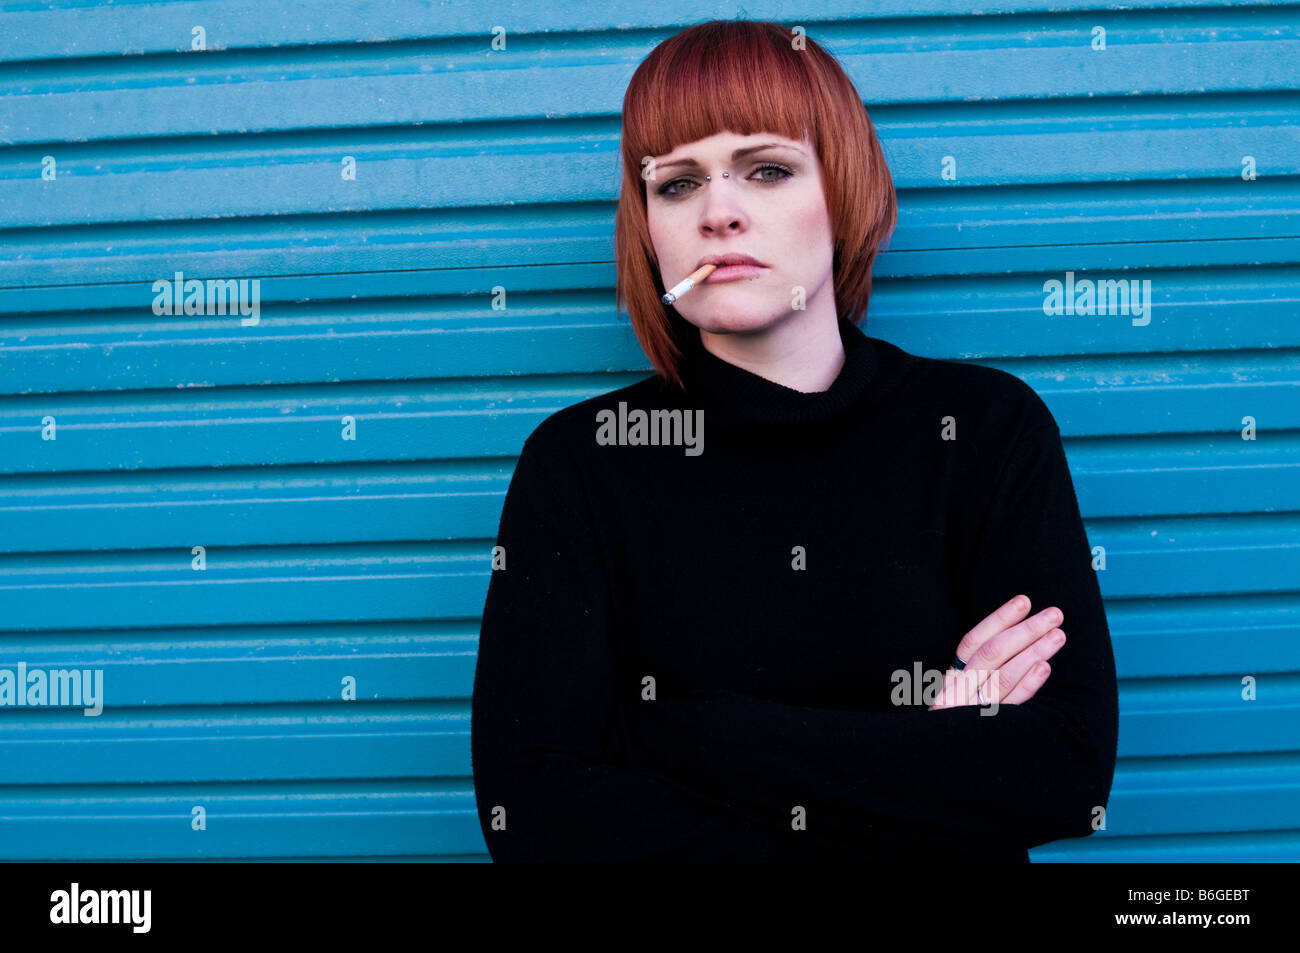 Young red haired girl woman with a cigarette in her mouth arms crossed in front of blue garage doors, outside, UK - Stock Image